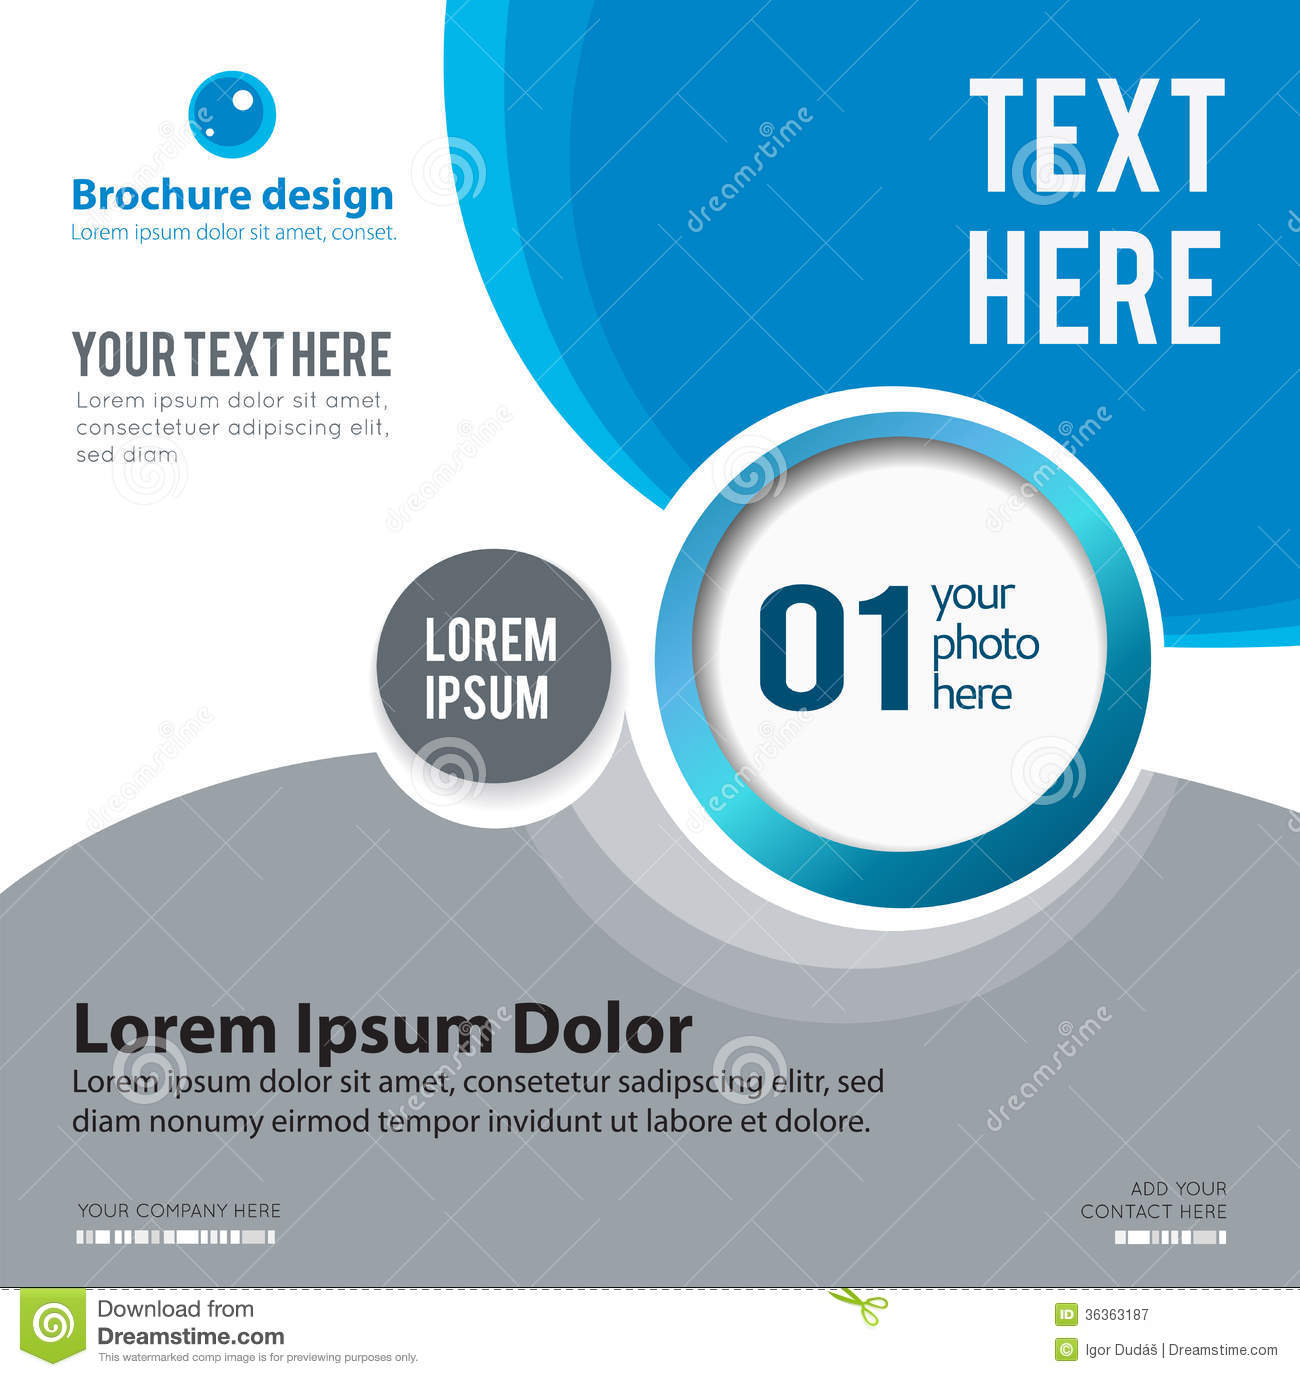 Poster design template - Download